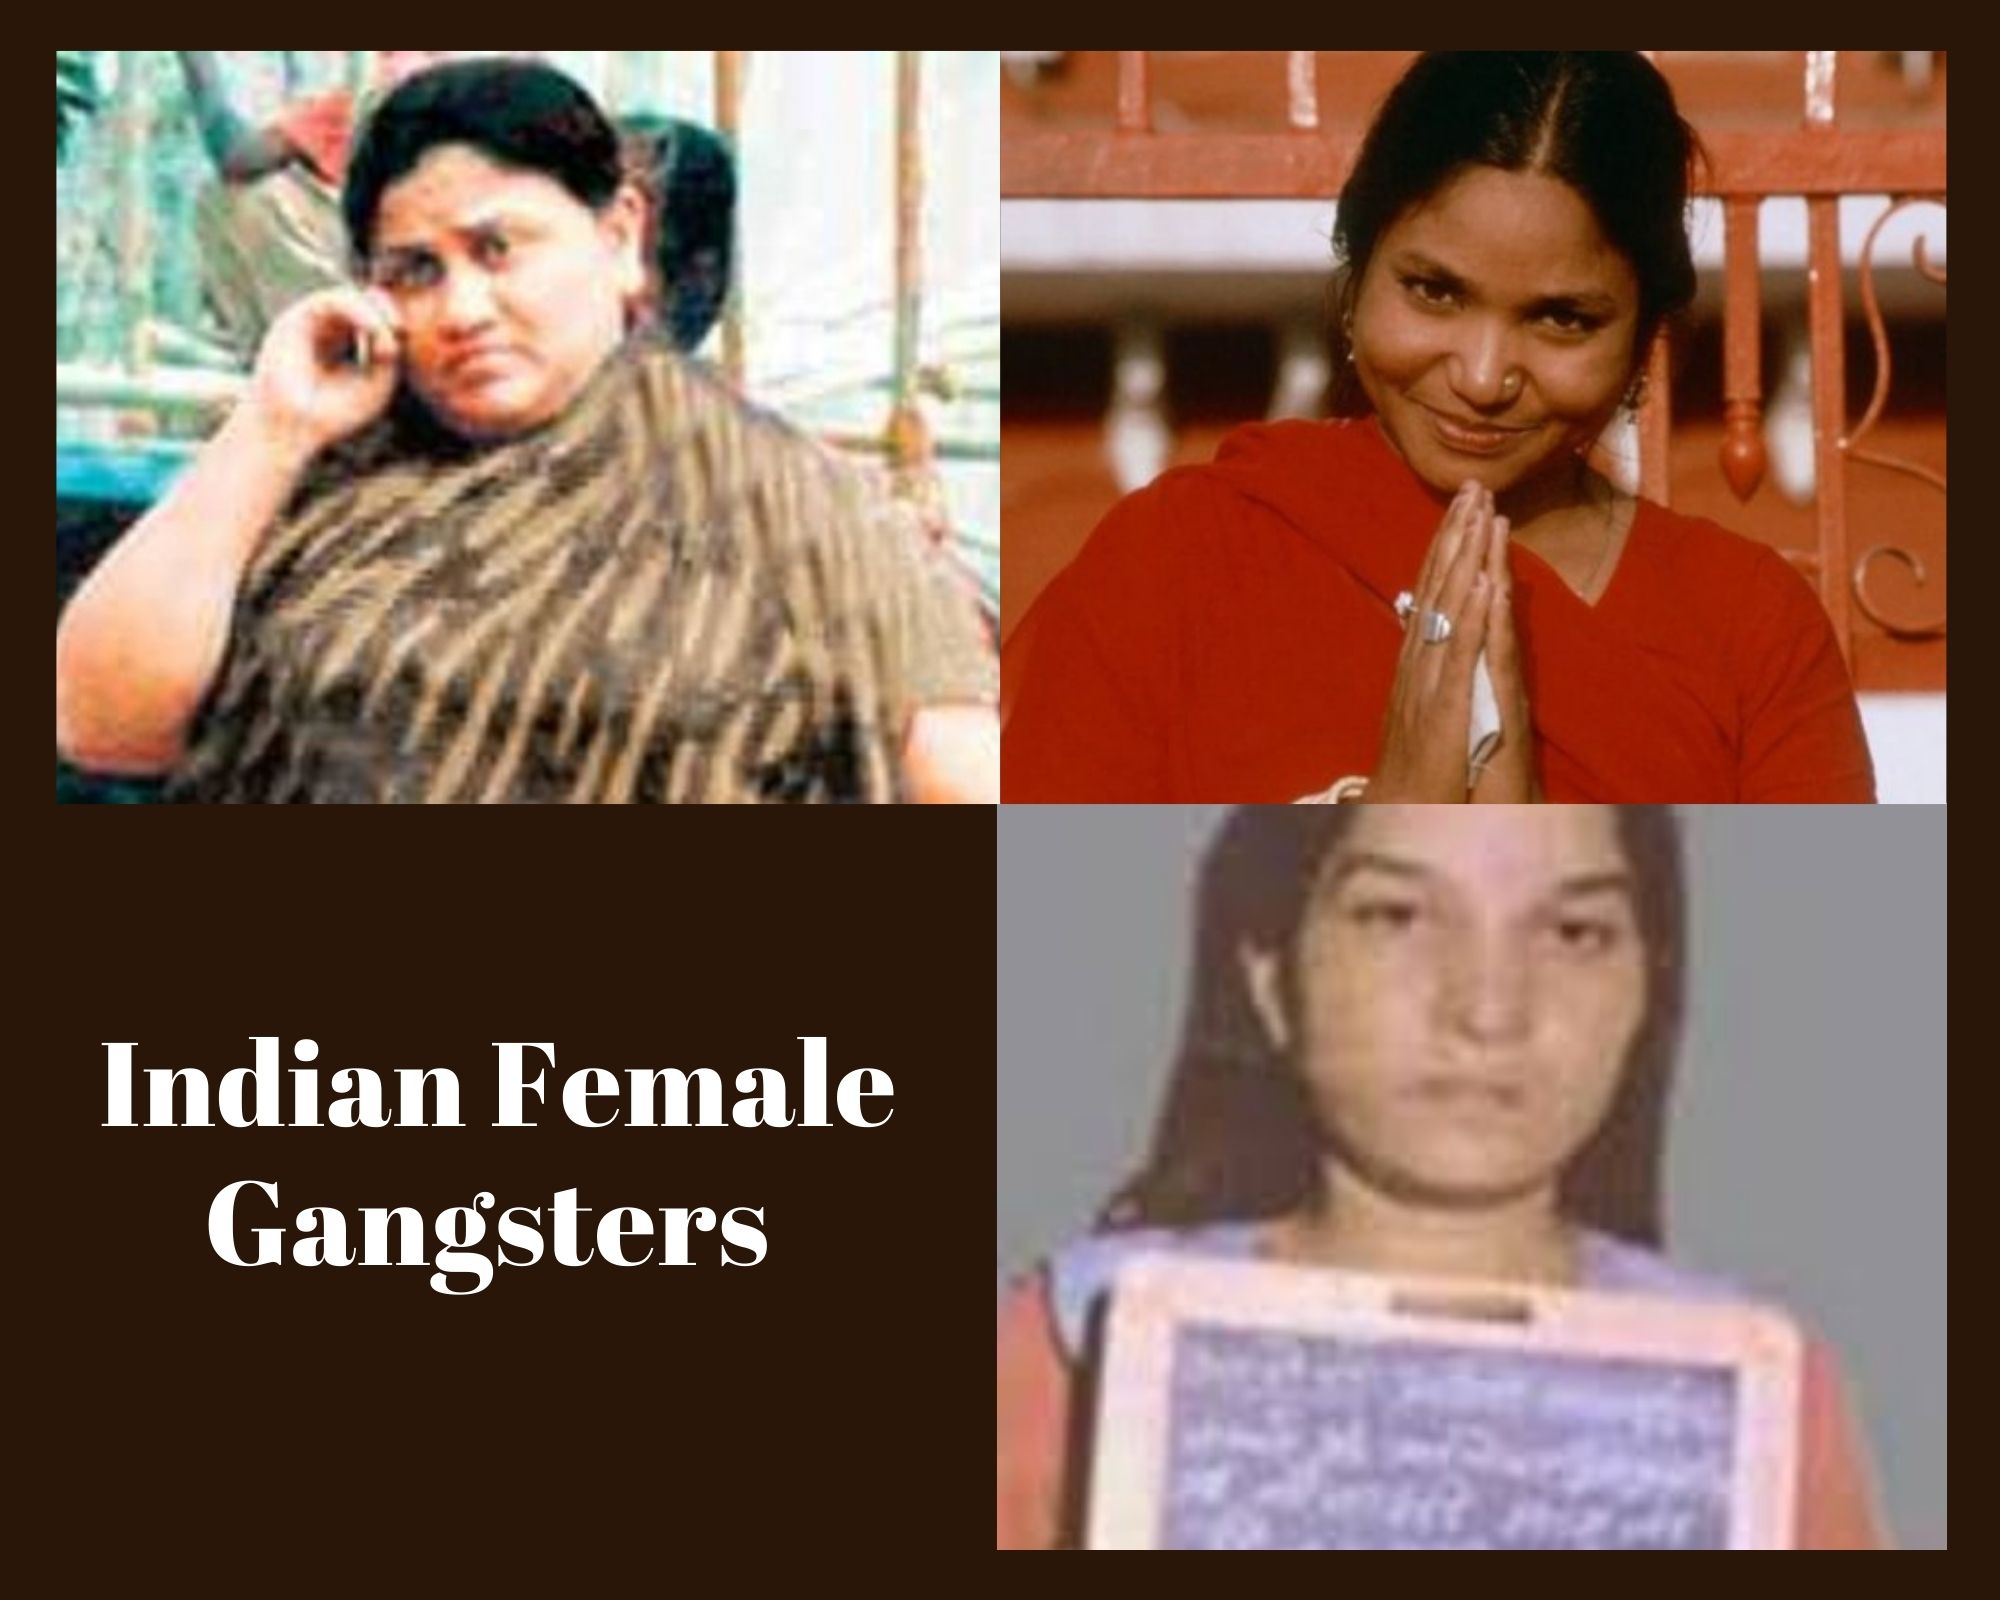 Indian Female Gangsters